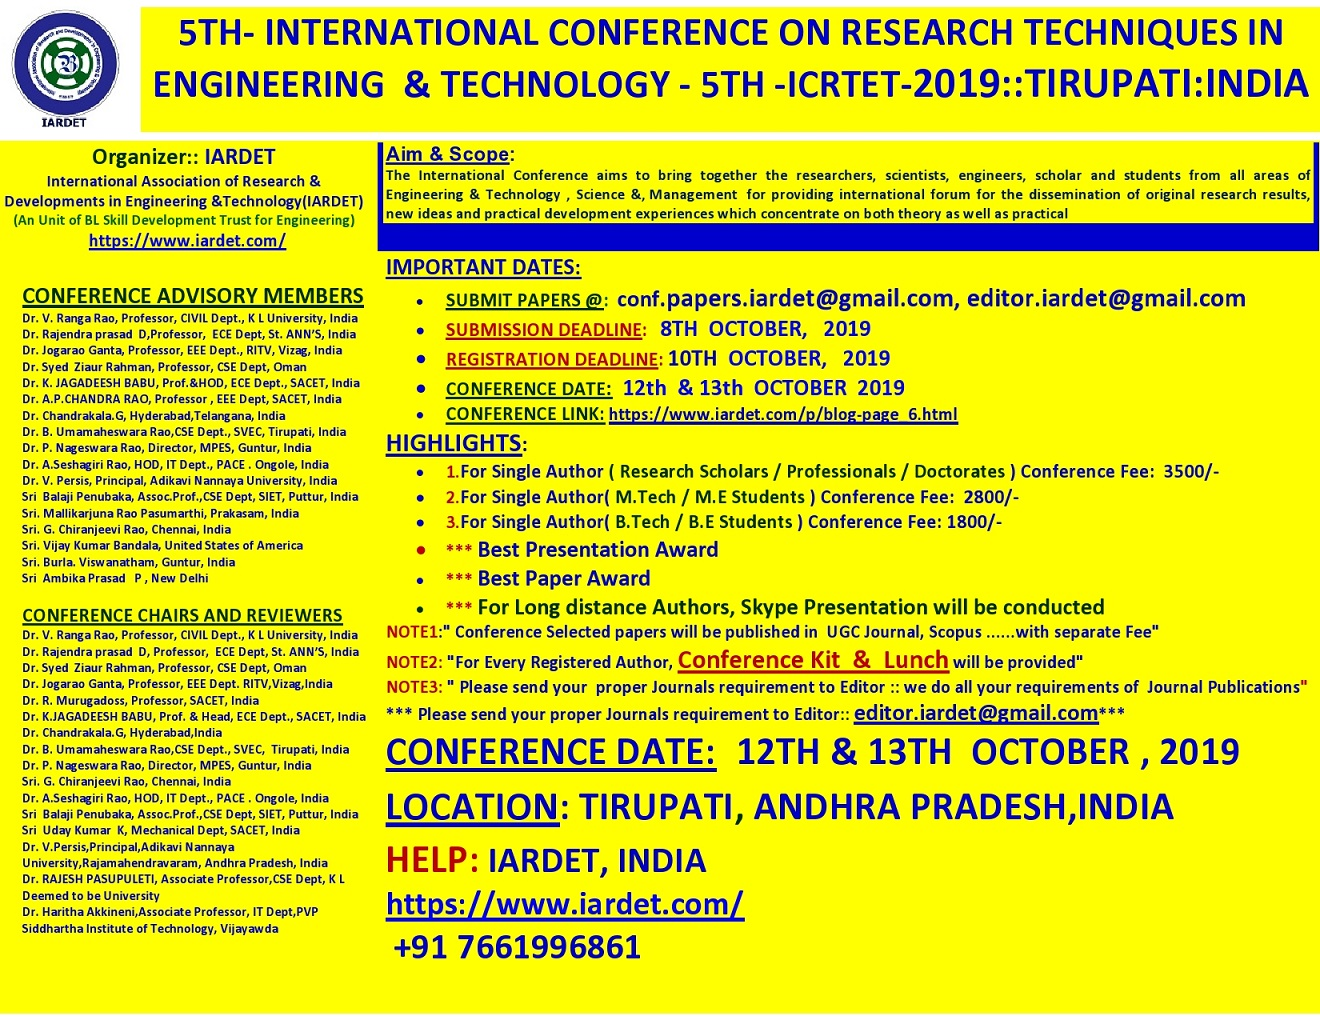 5th International Conference on Research Techniques in Engineering and Technology ICRTET 2019